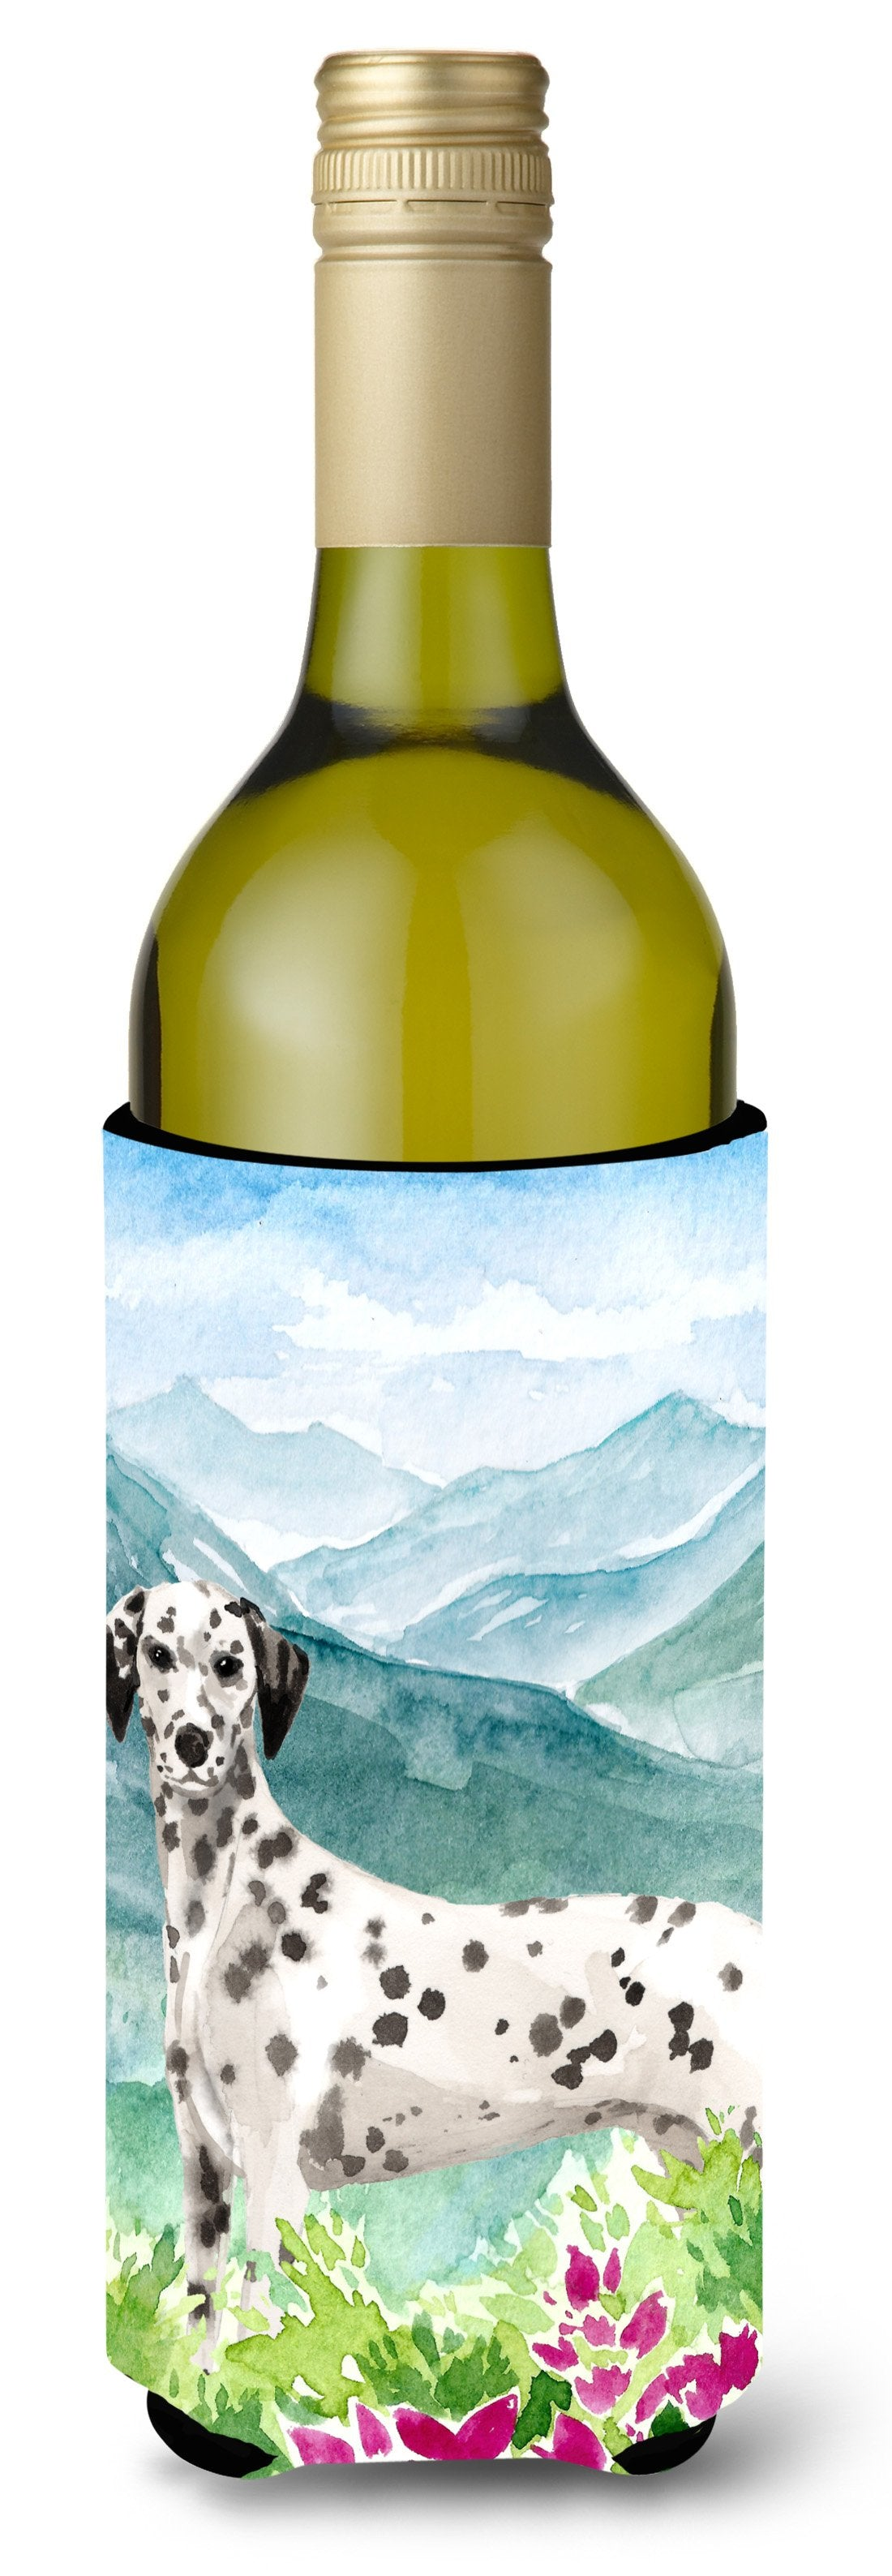 Mountian Flowers Dalmatian Wine Bottle Beverage Insulator Hugger CK1980LITERK by Caroline's Treasures